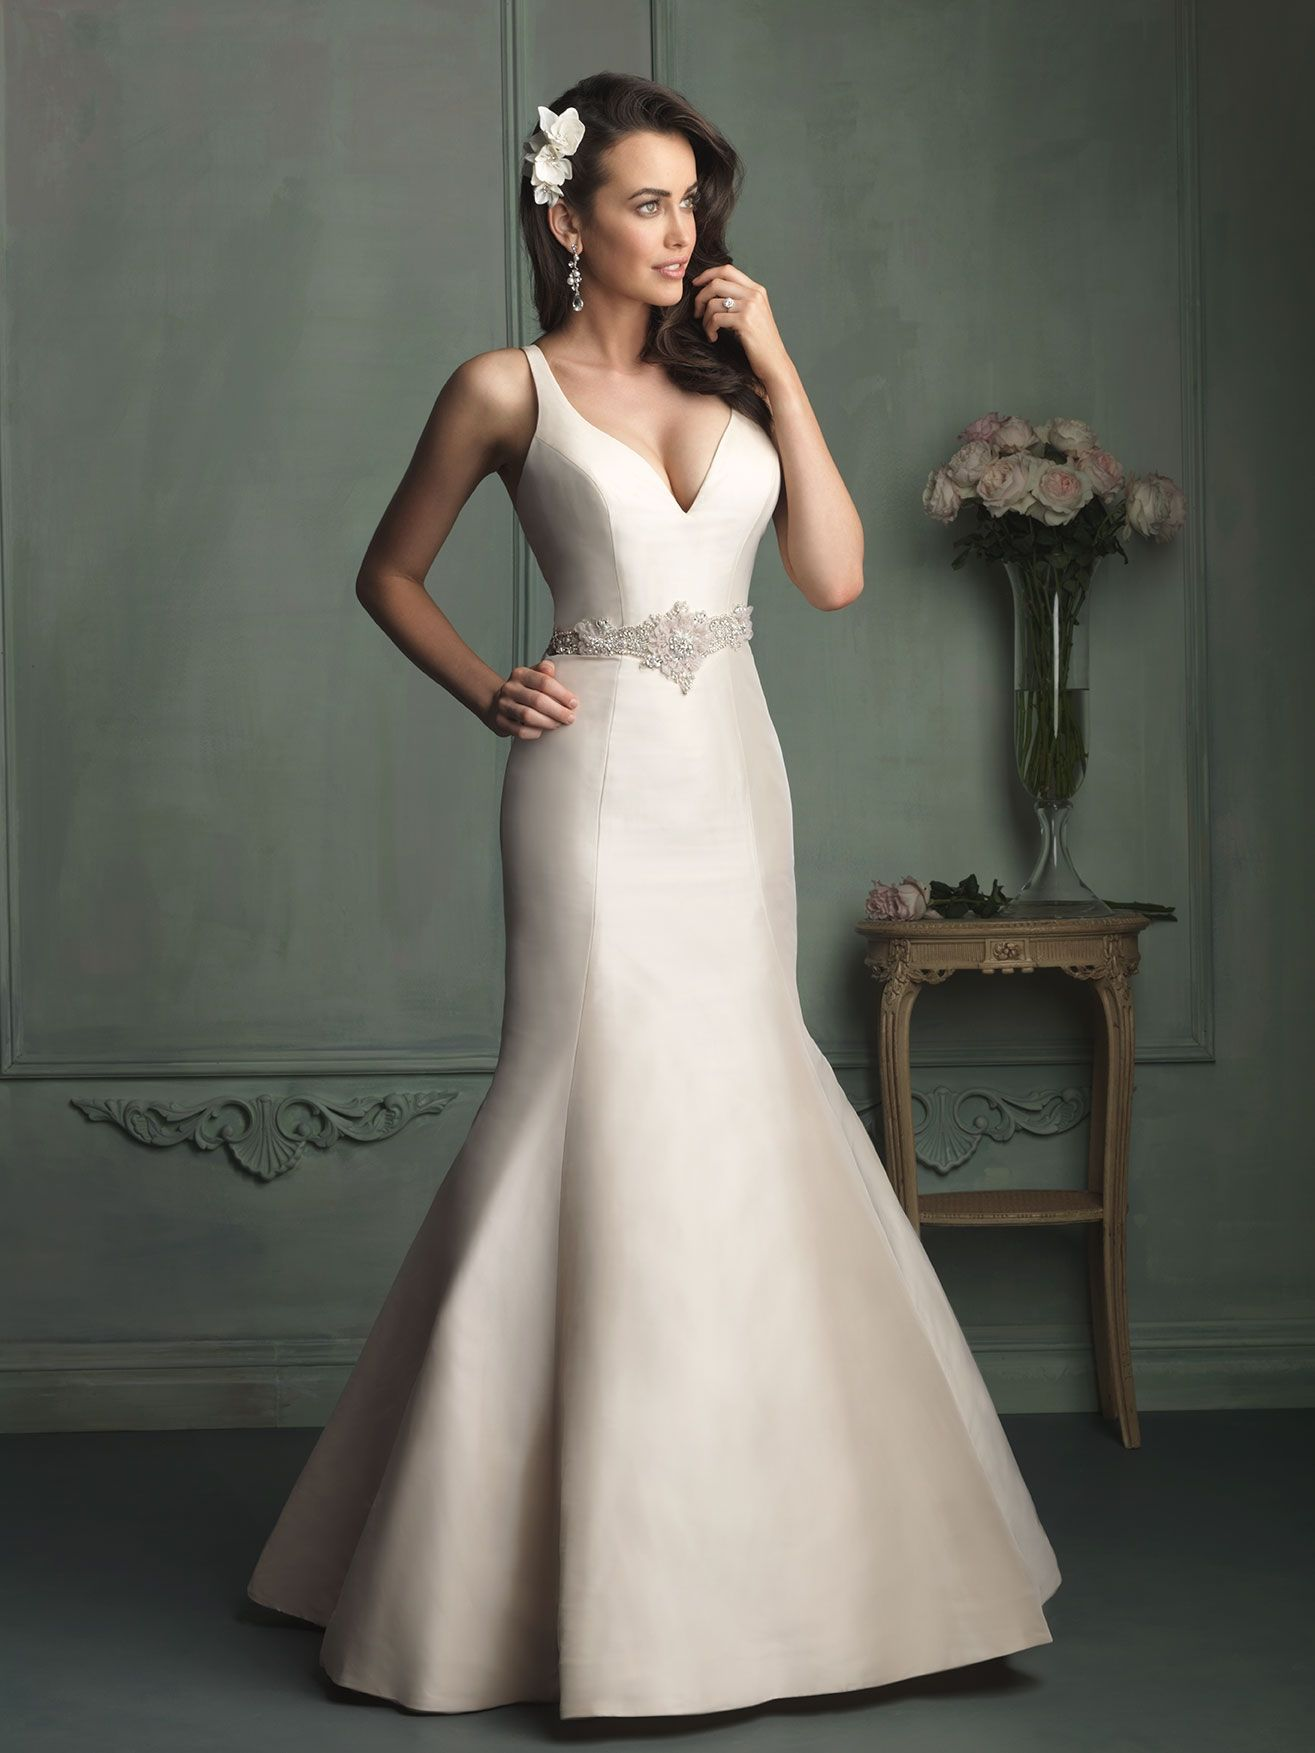 Allure bridals style sleek modern wedding dress w